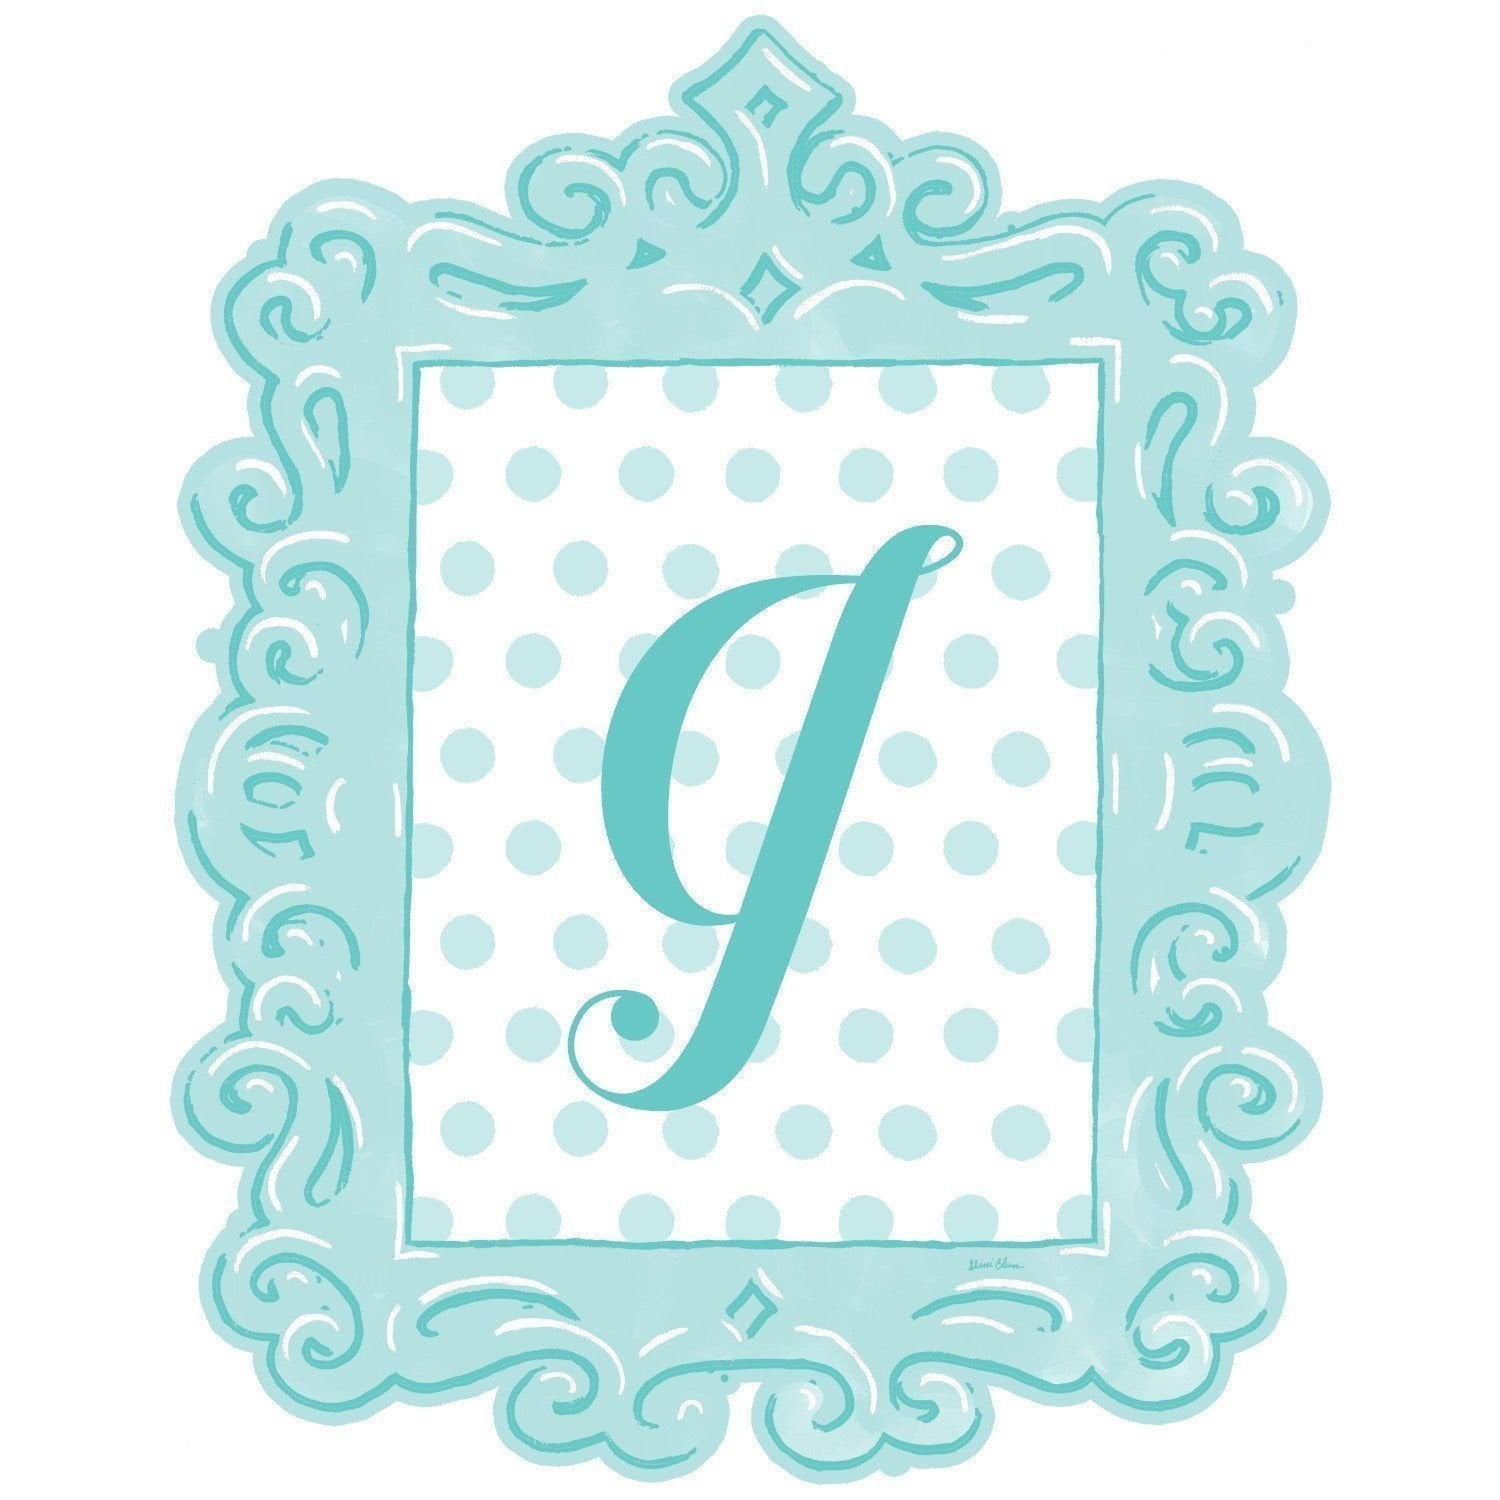 Framed Dotted Monogram Wall Decal in Turquoise-Decals-Default-Jack and Jill Boutique